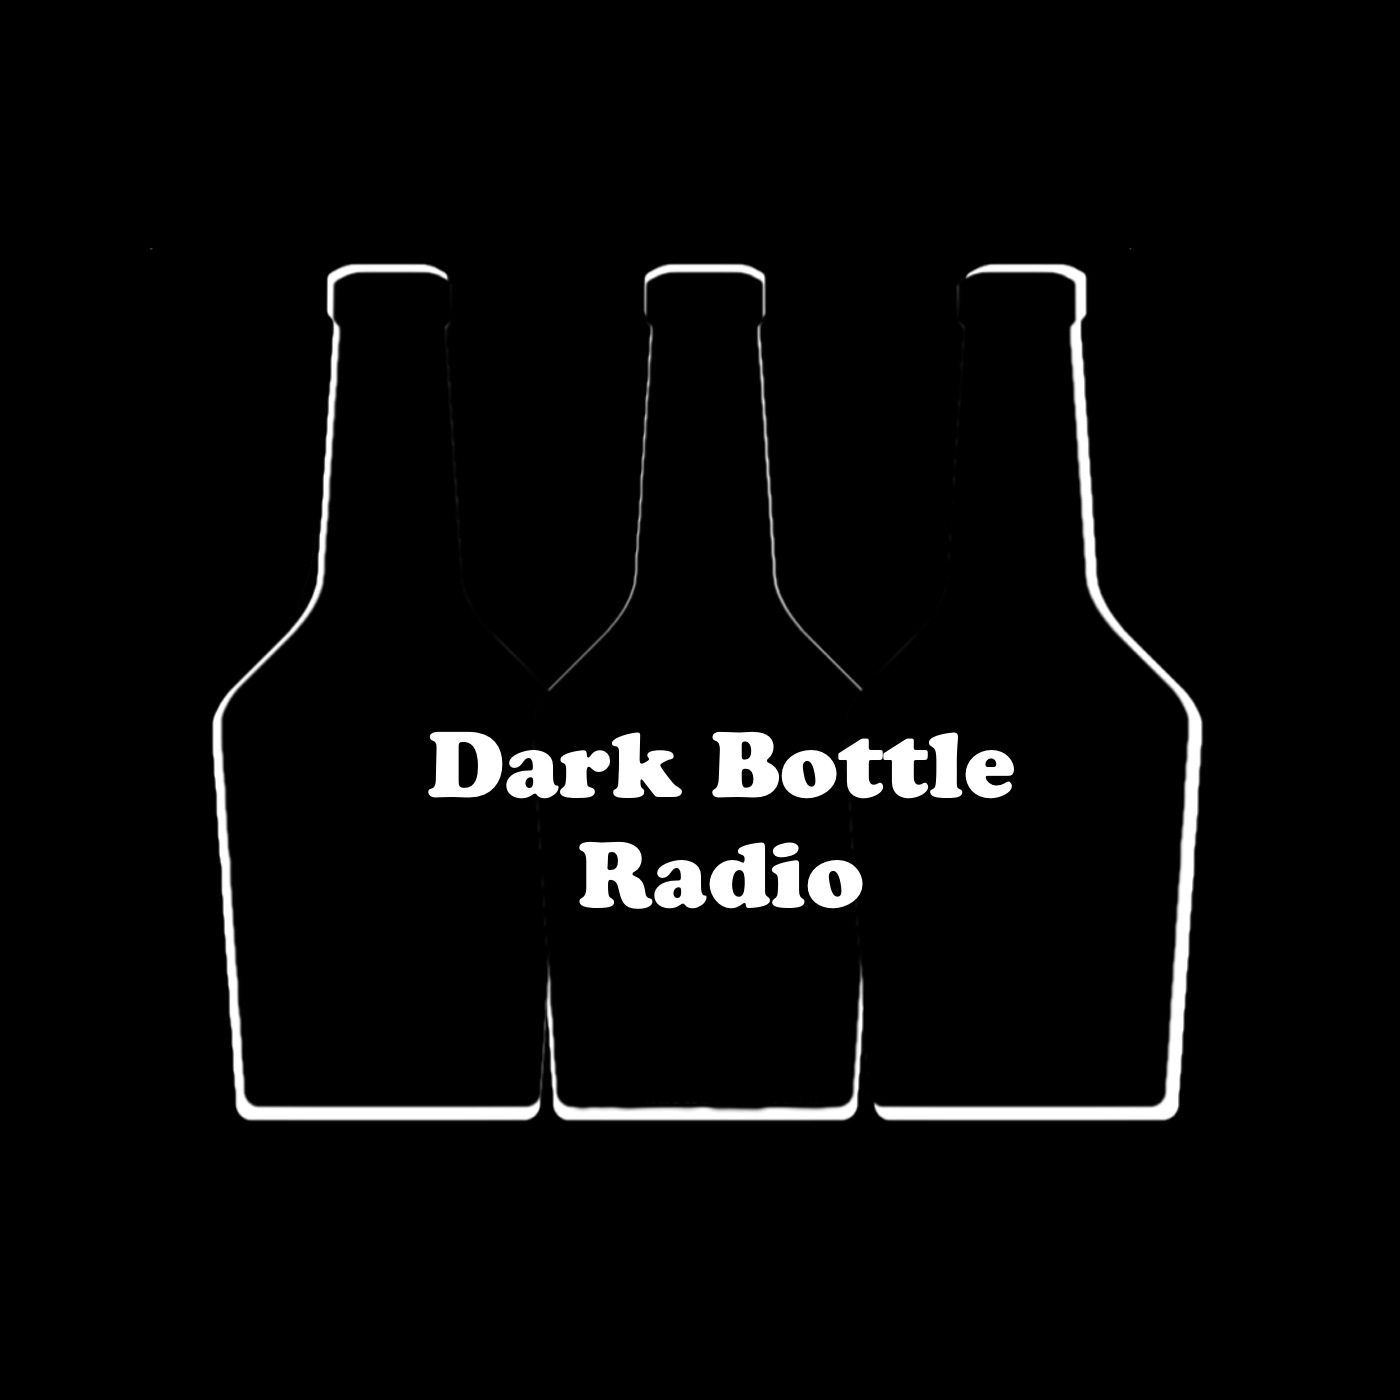 Dark Bottle Radio by Tiph Hunter